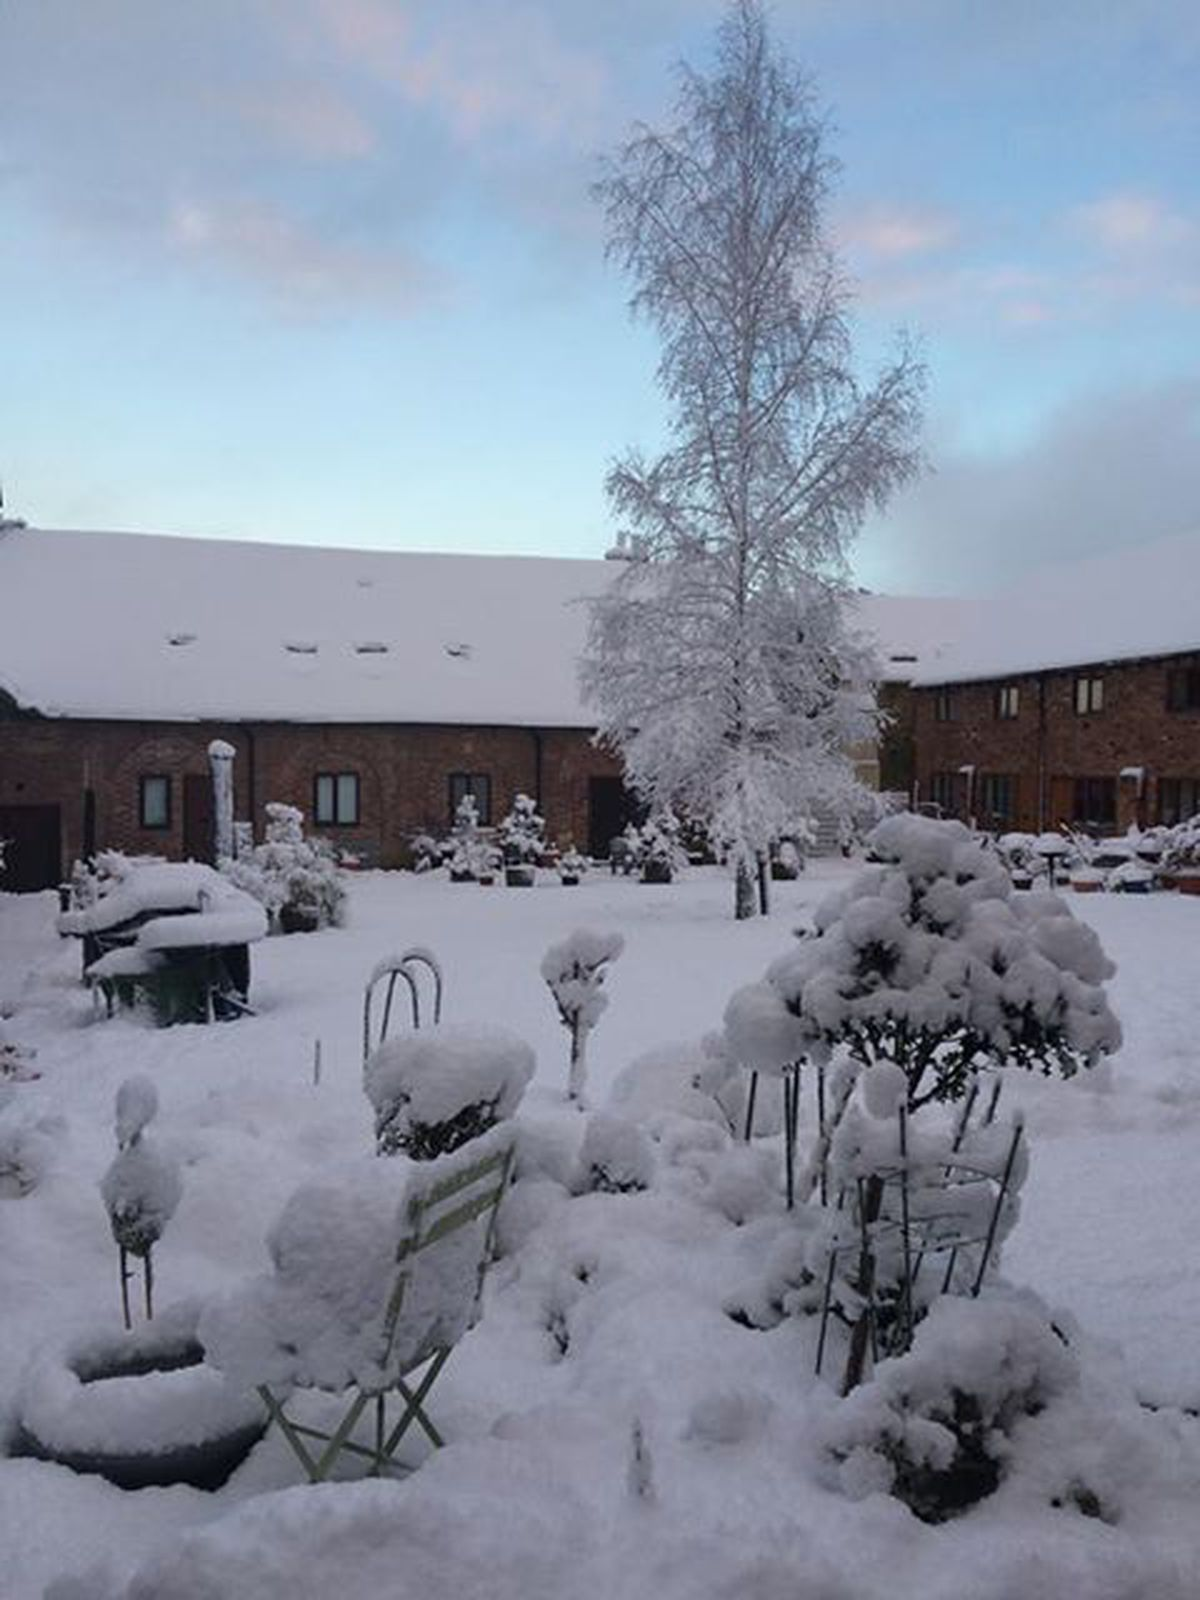 King Charles Barns in Madley looking beautiful in the snow. Photo: Penny Lock.